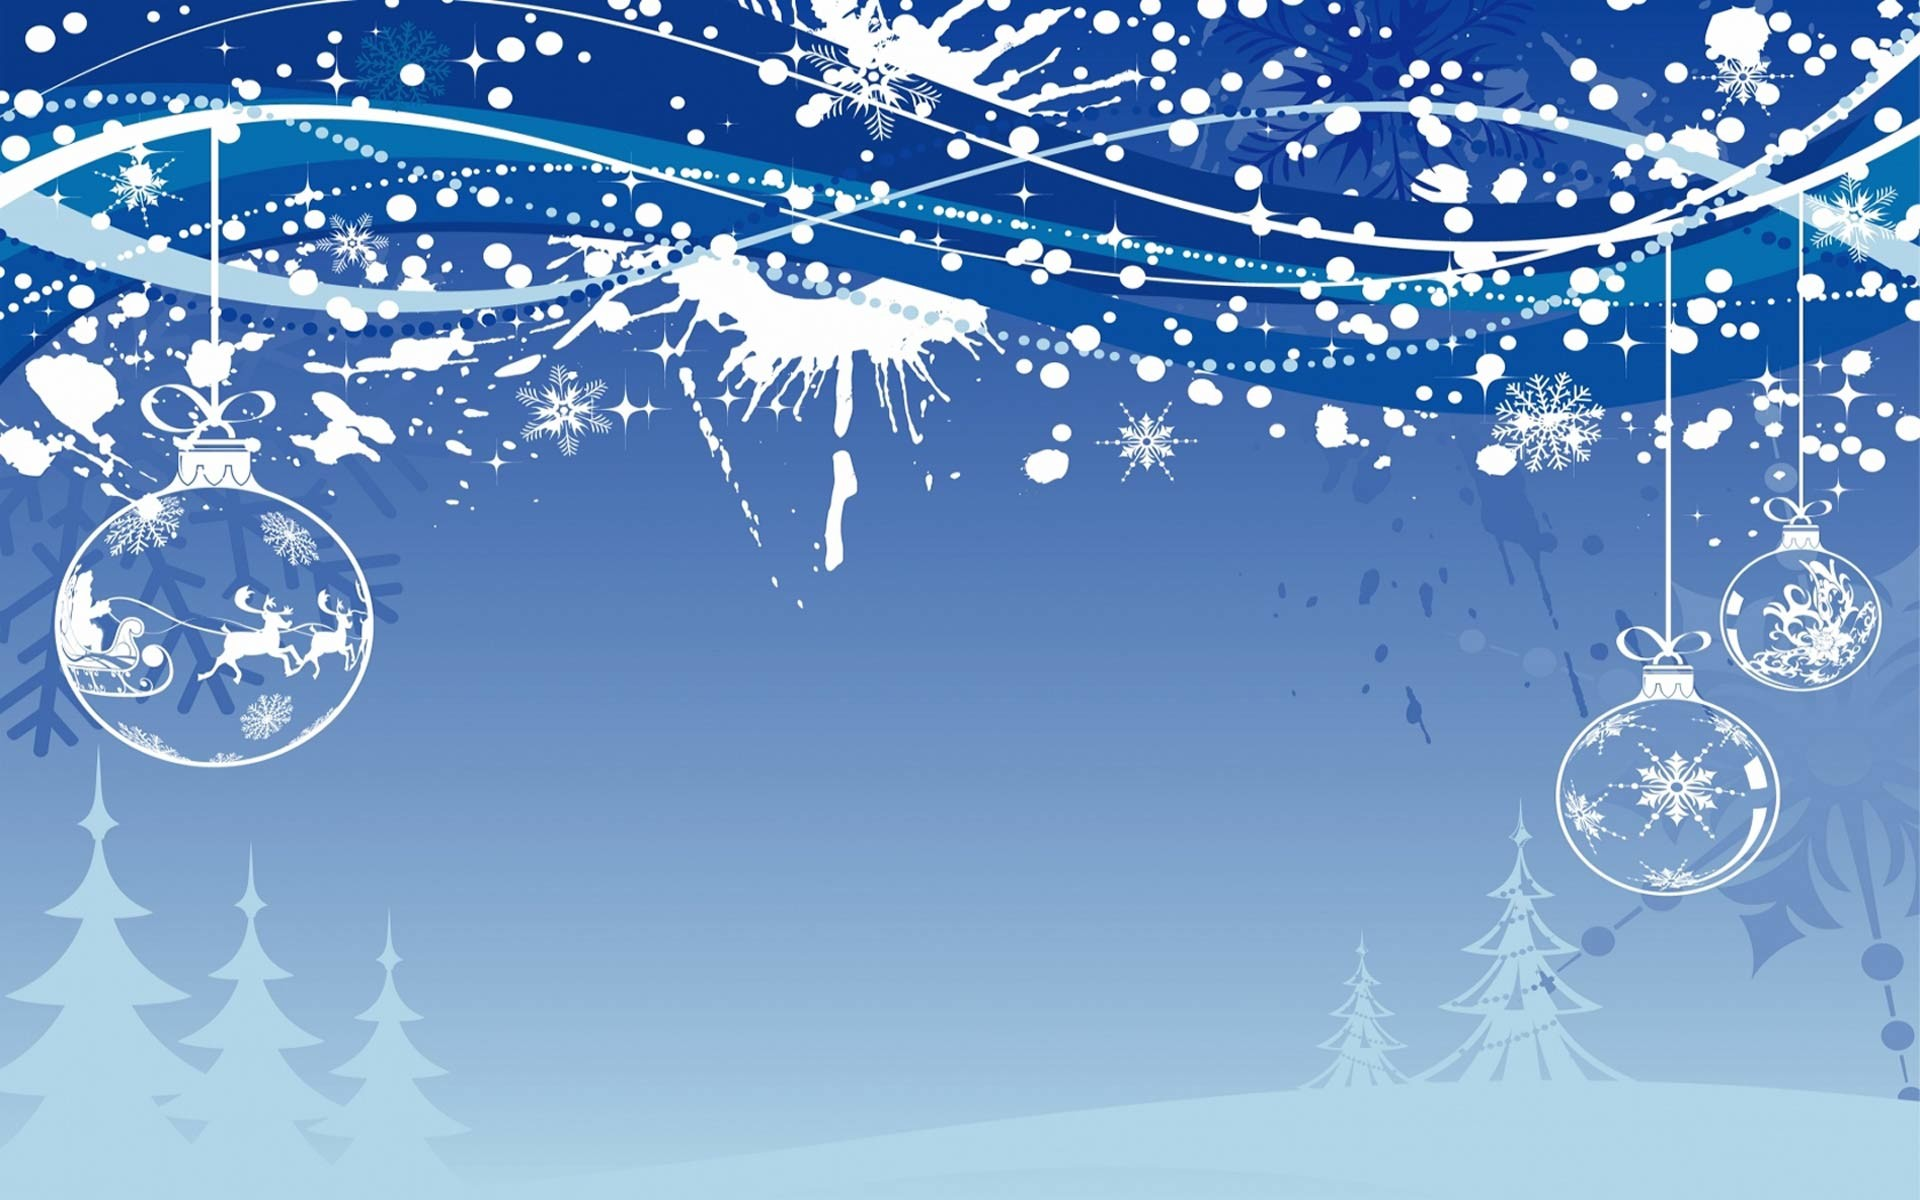 1920x1080 winter landscape live wallpaper for android phones and tablets youtube